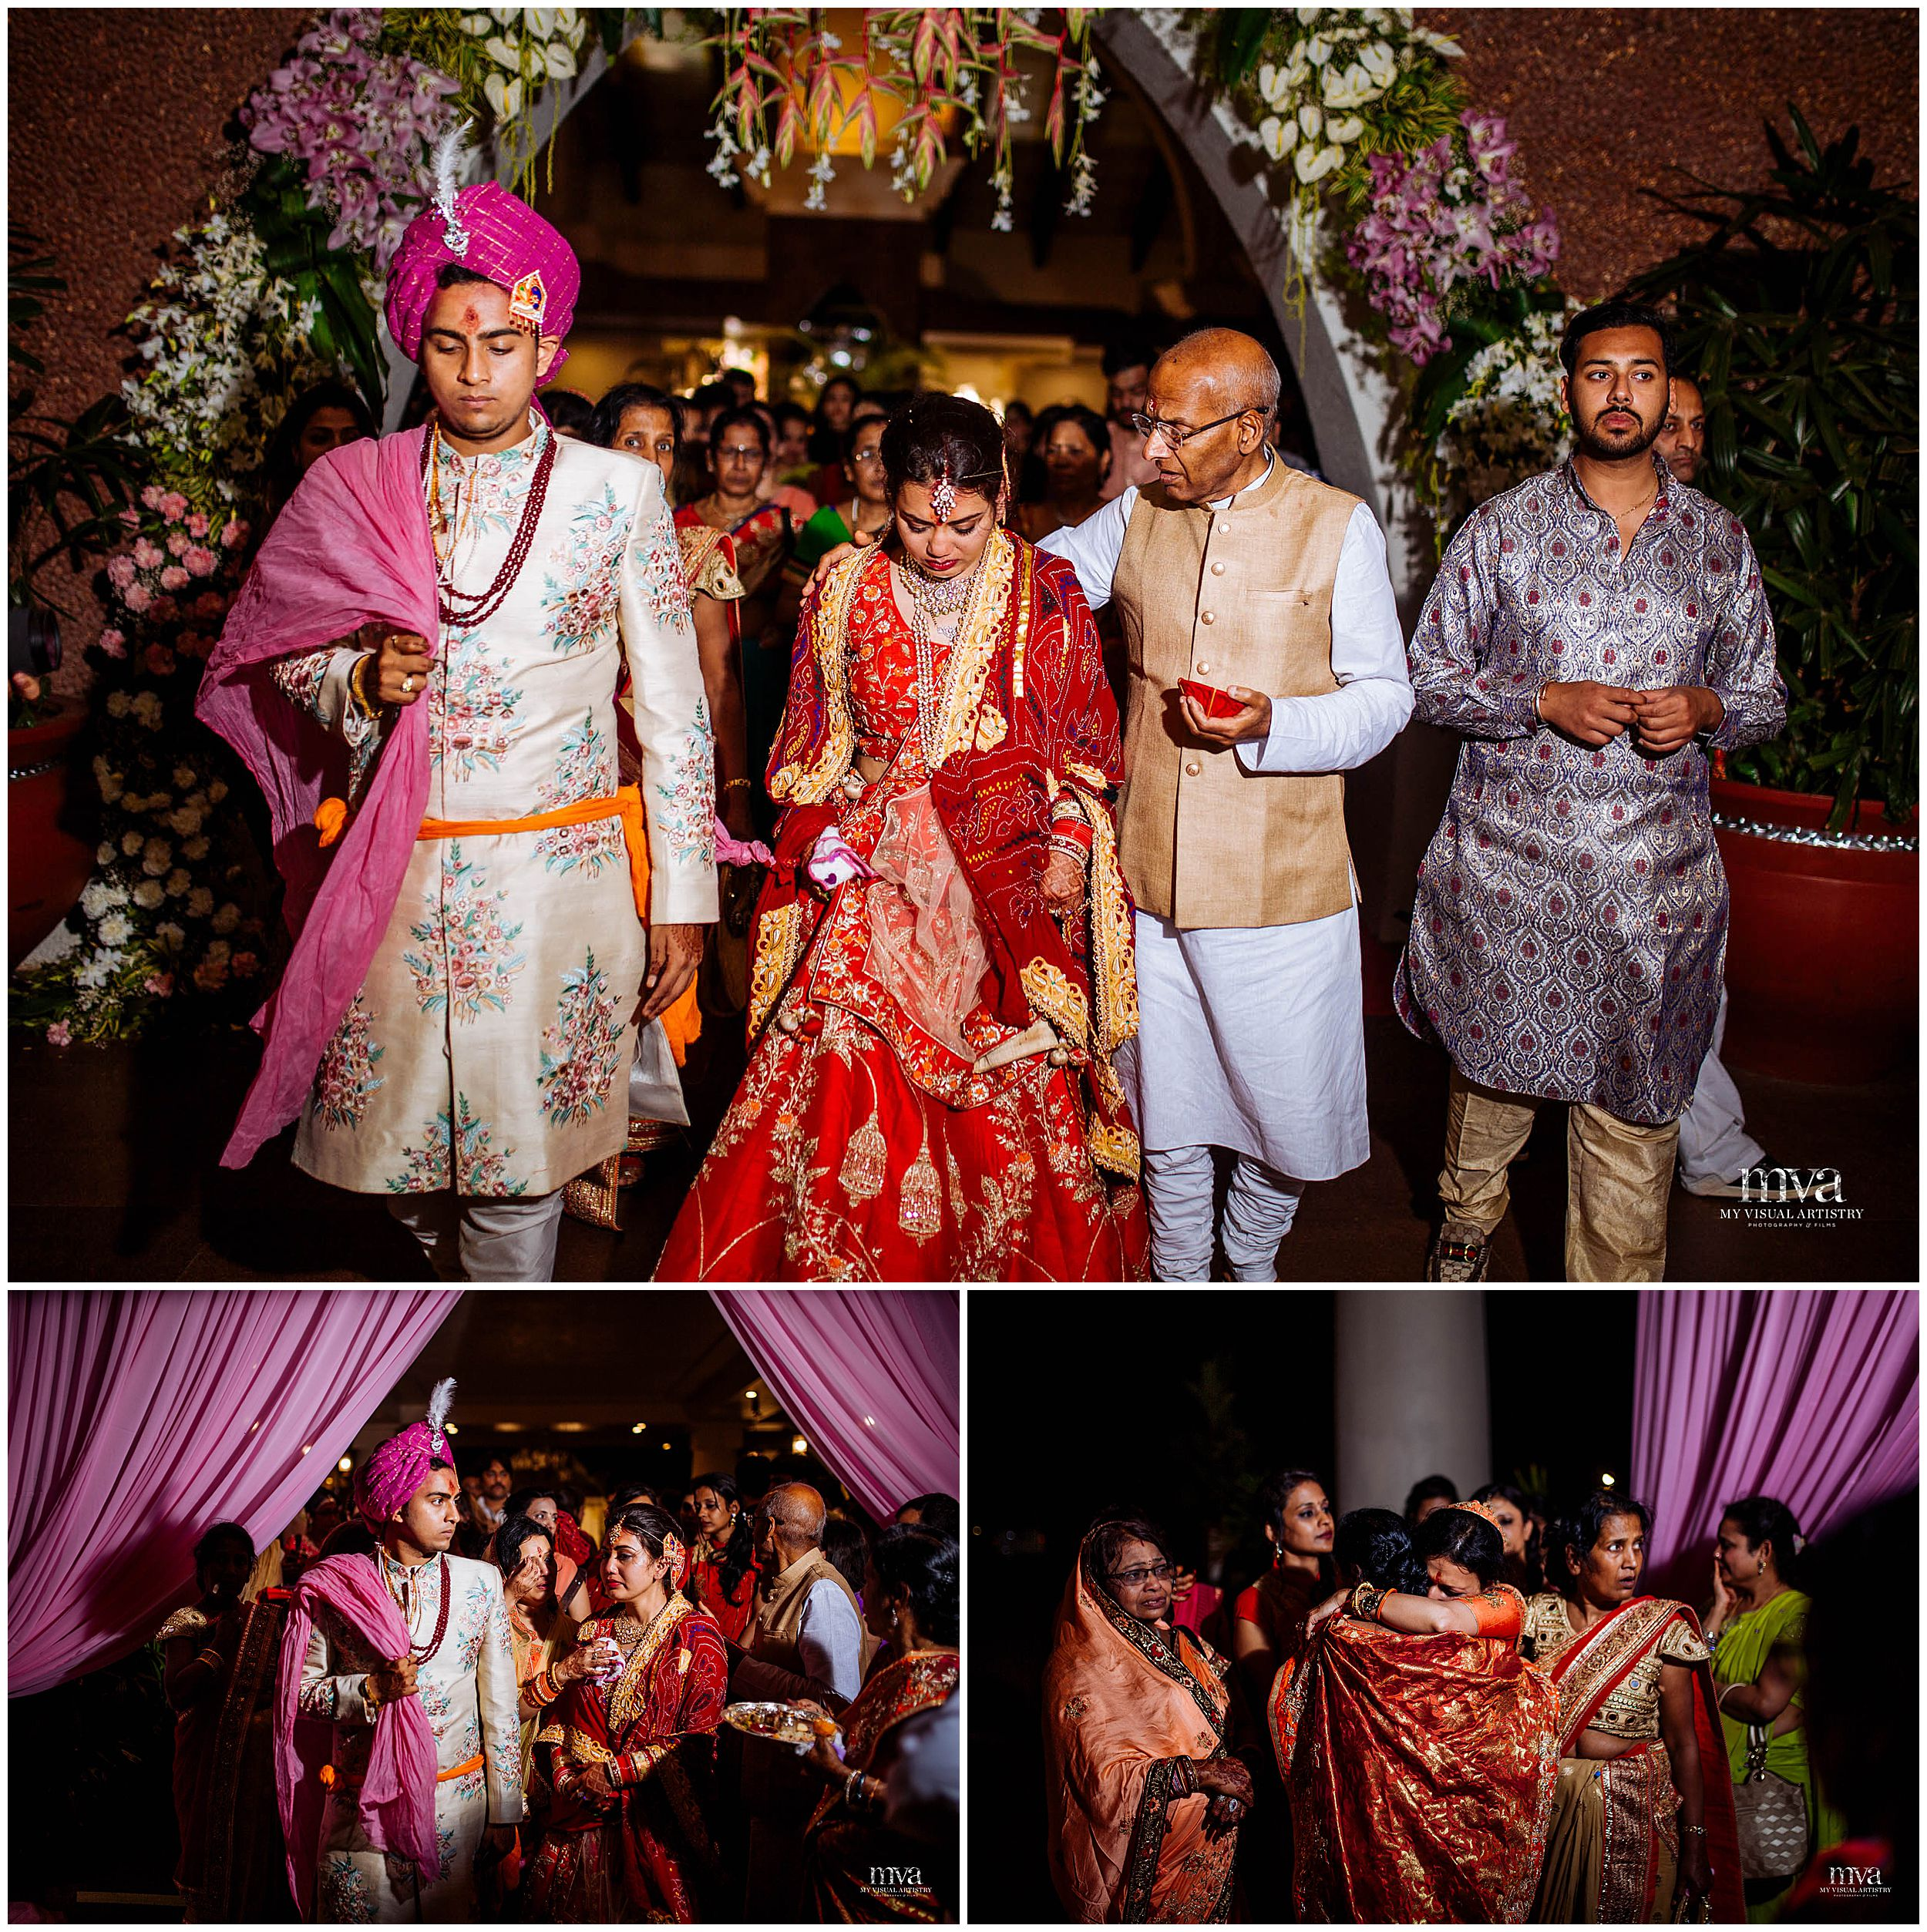 ROHIT_SANIYA_MYVISUALARTISTRY__WEDDING_PHOTOGRAPHER_GOA_DESTINATION_CAREVELA_RESORT_0028.jpg